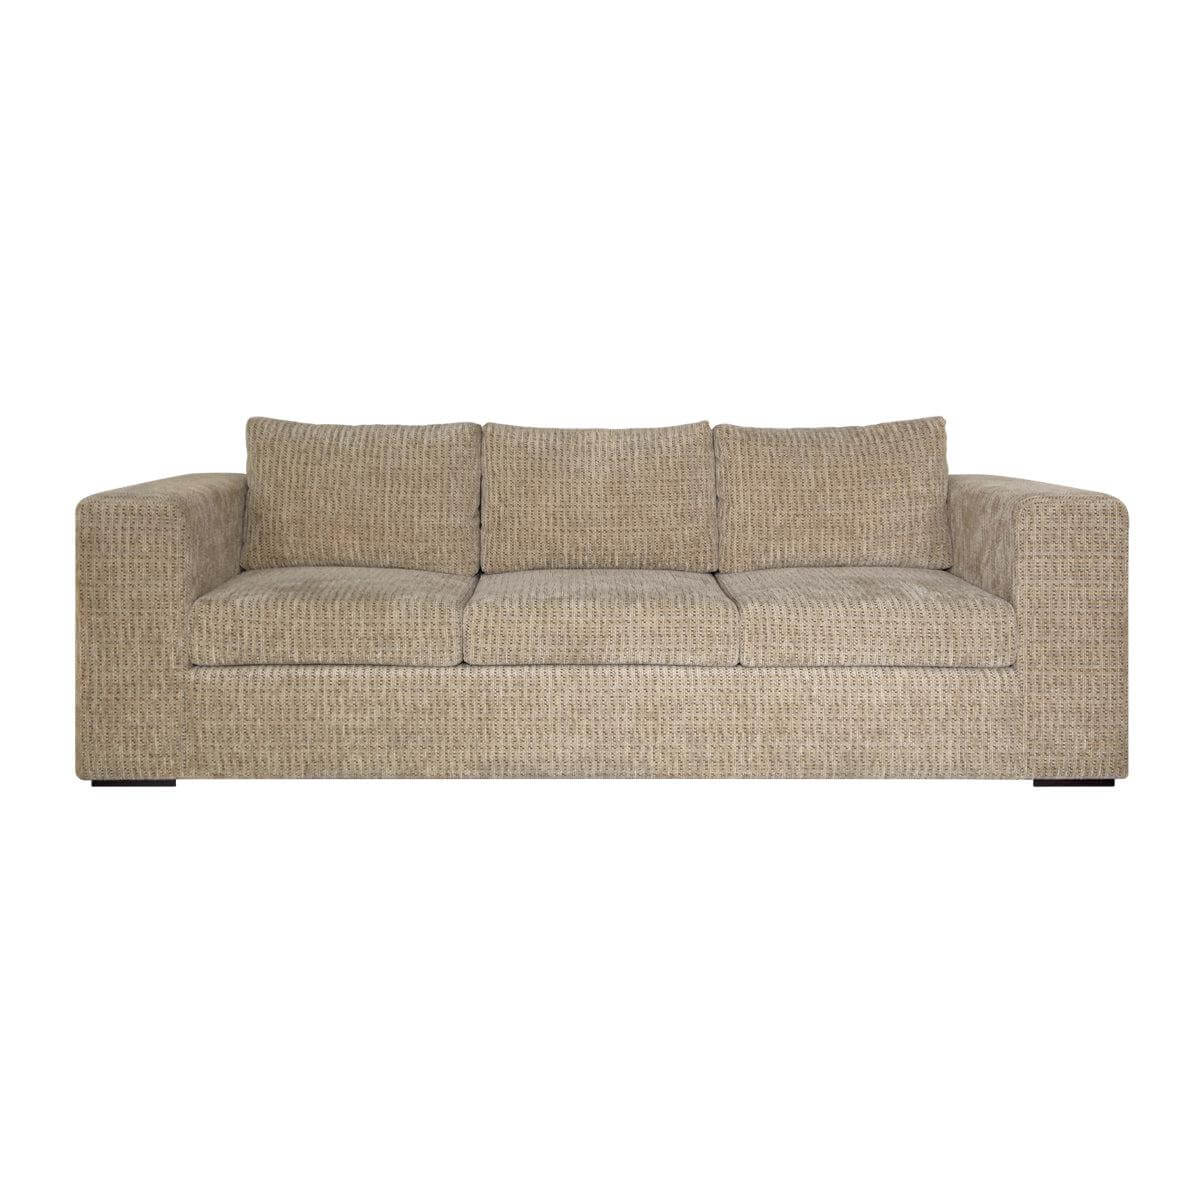 Tribeca 3-Seat Sofa - handsome and tasteful